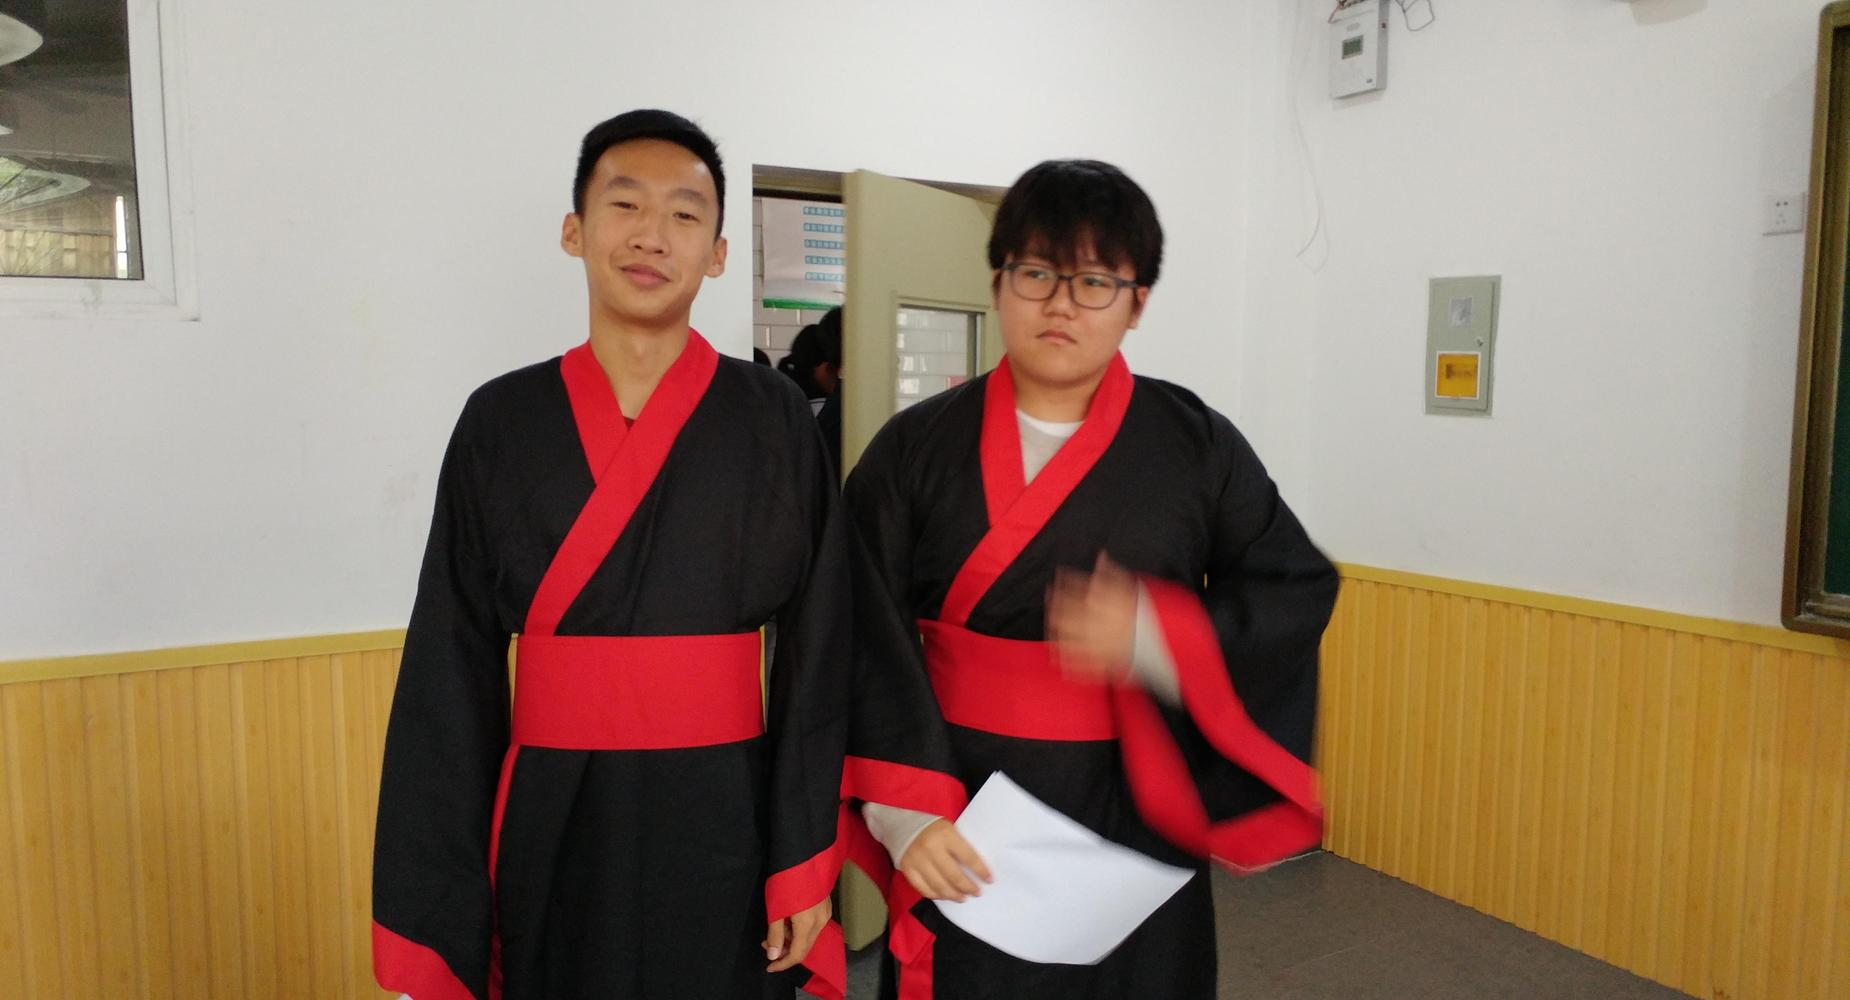 Two students in China wearing kimonos